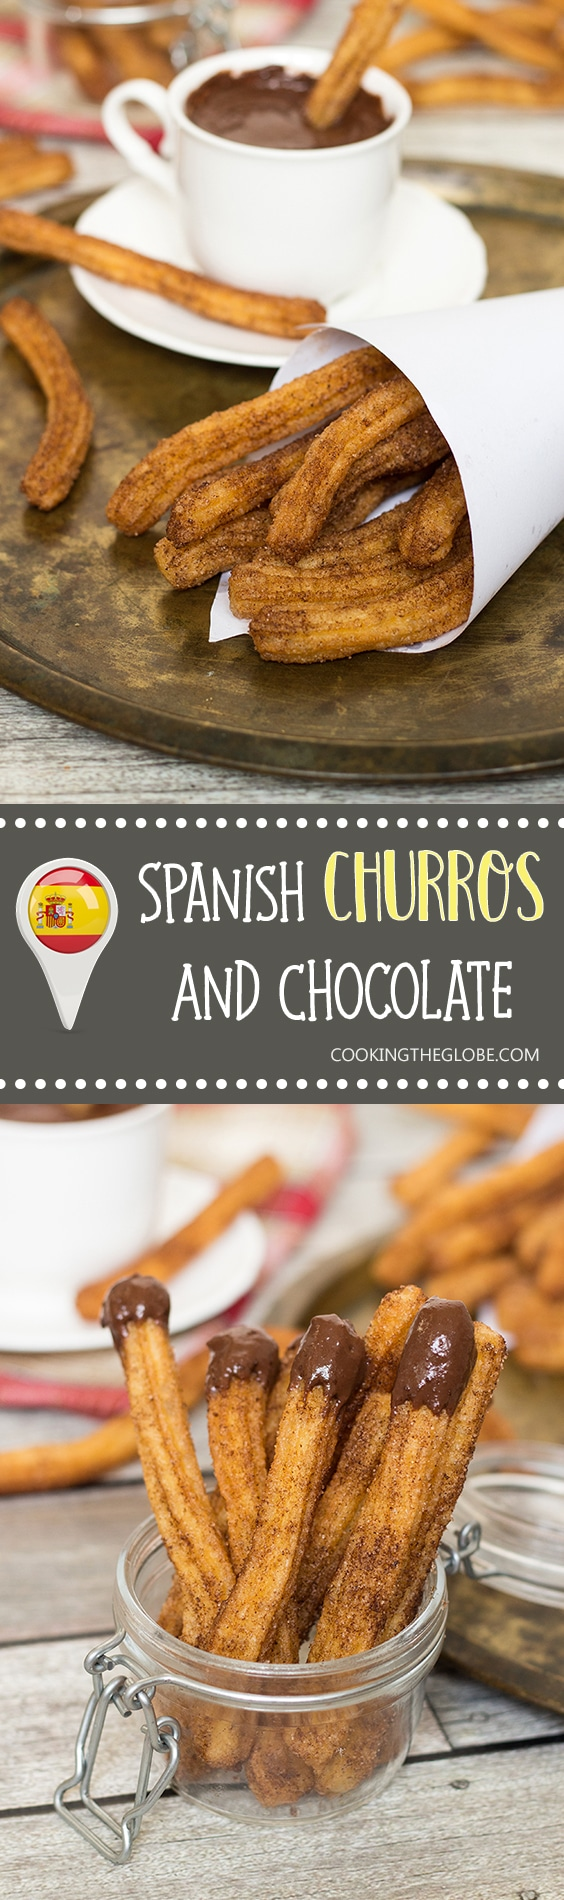 These Churros Con Chocolate are undeniable Spanish breakfast favorites. I can understand why!